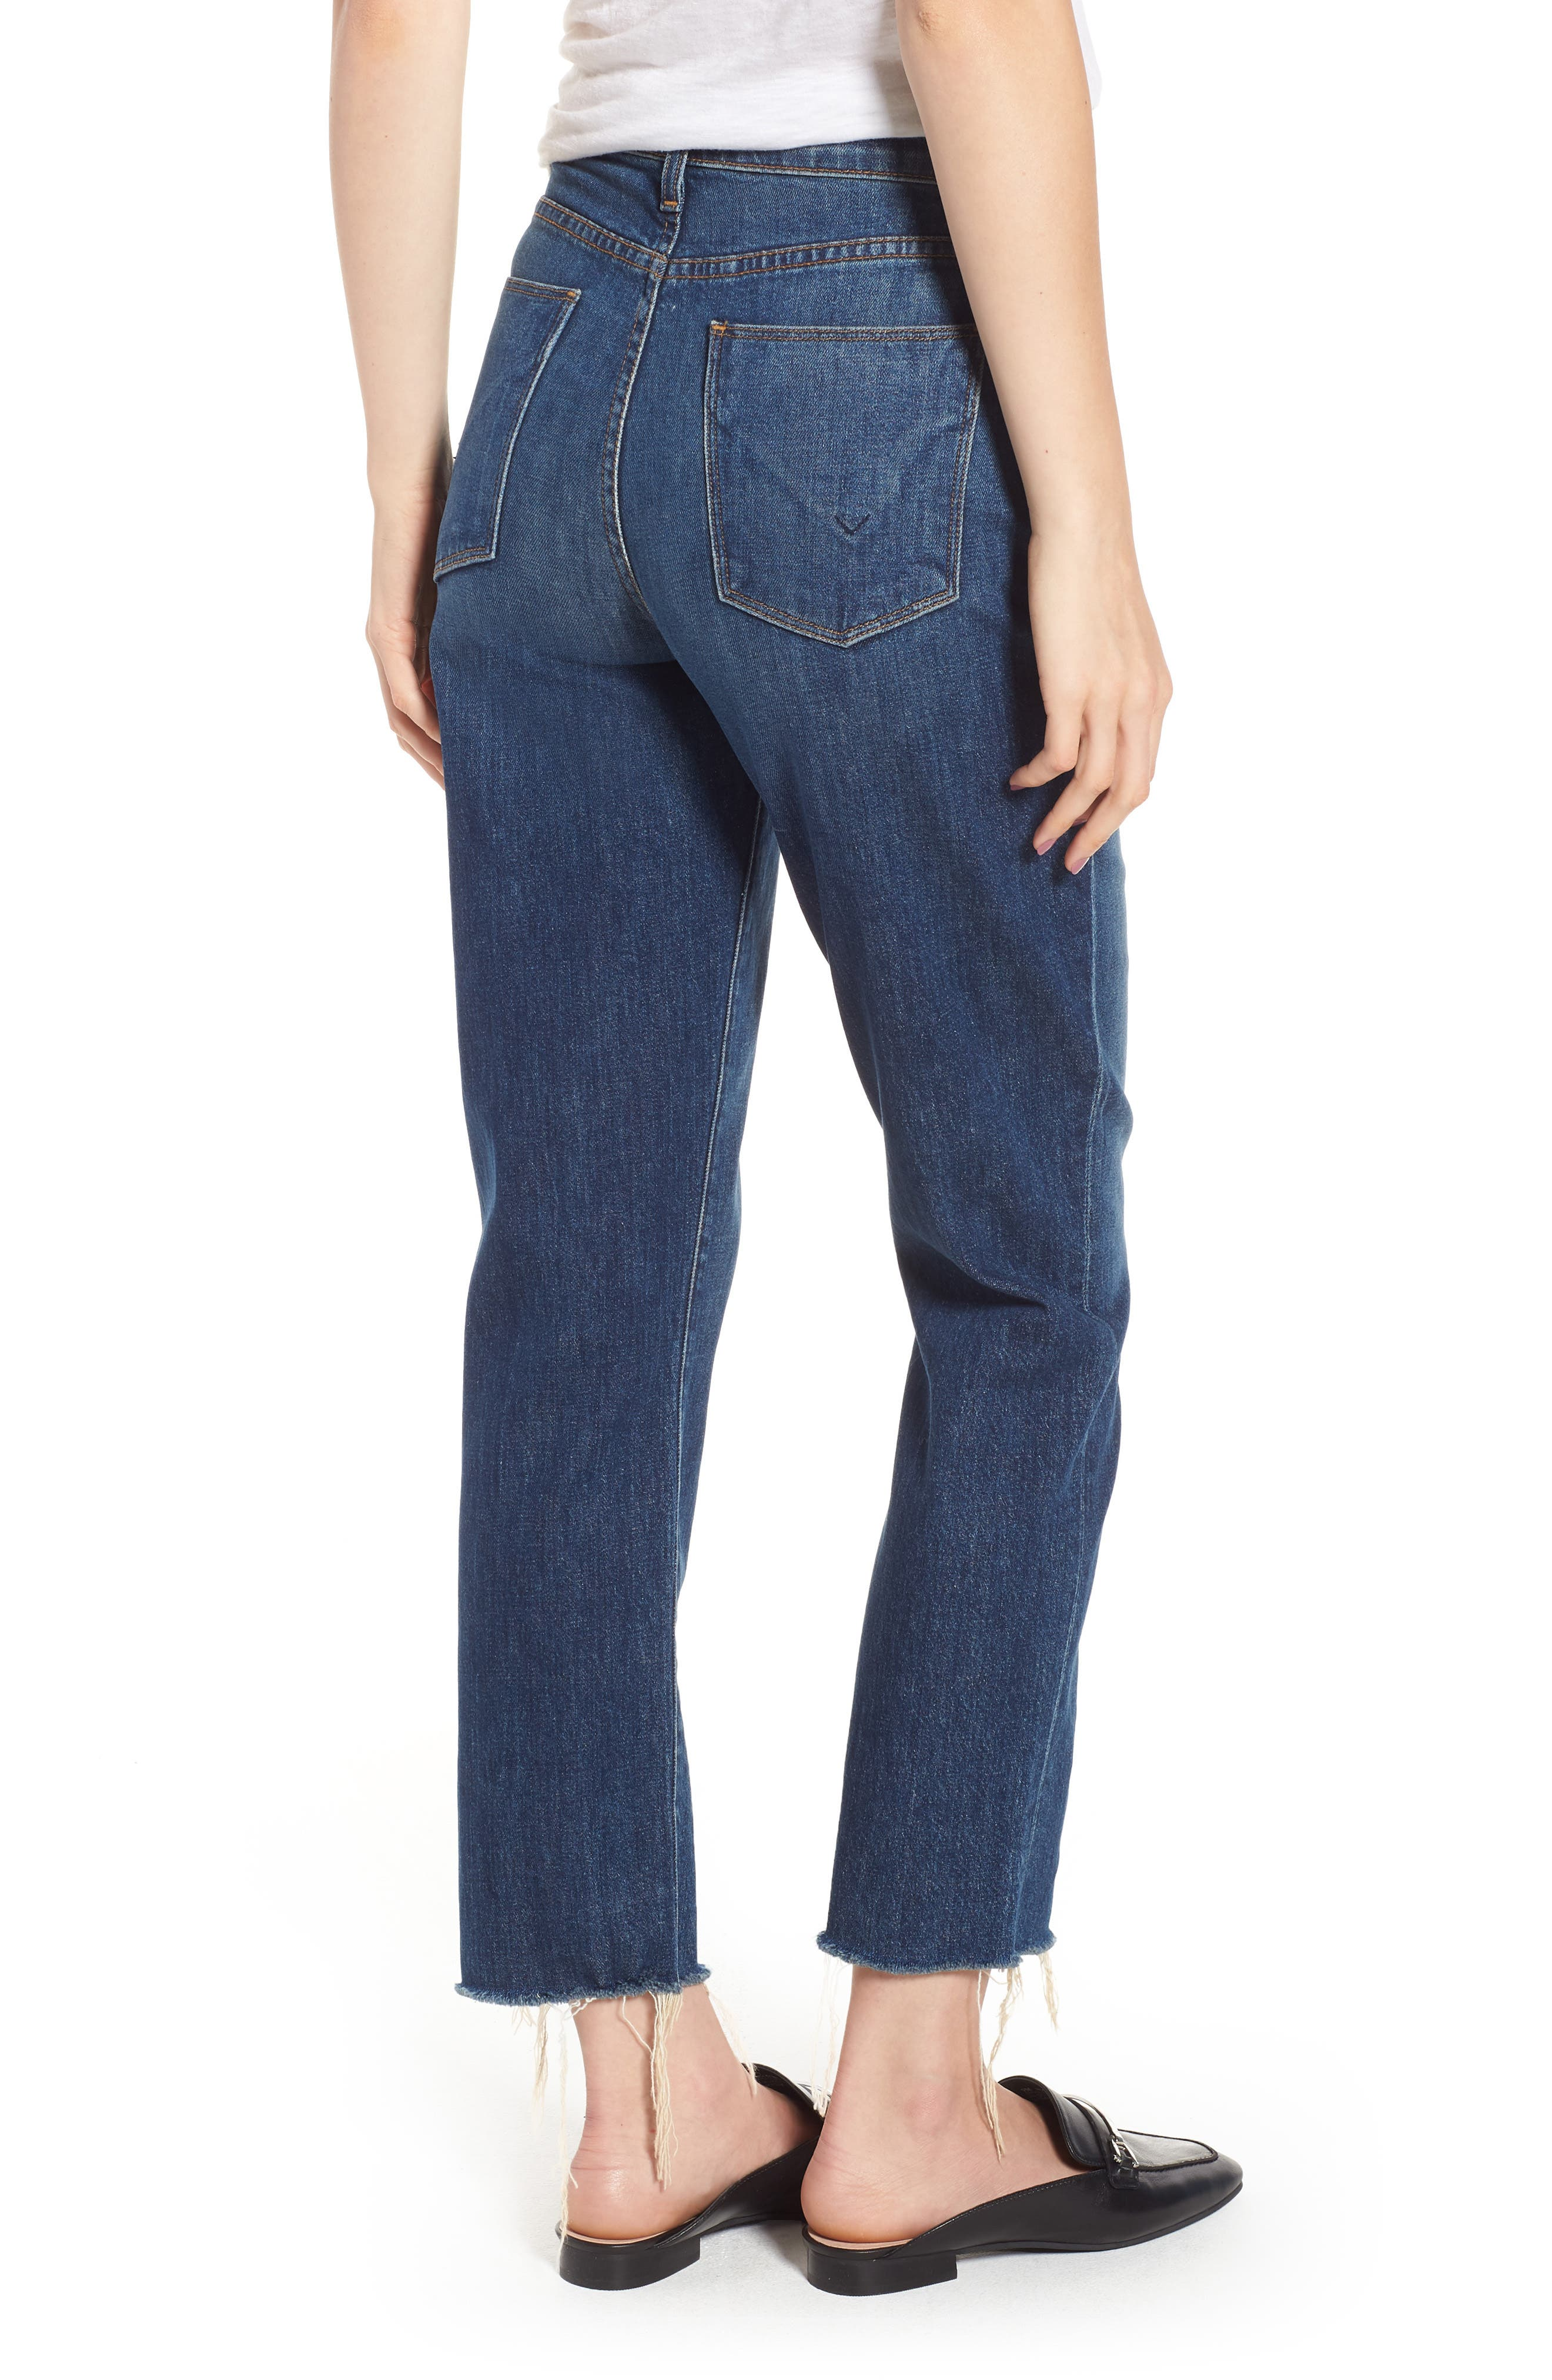 Zoeey High Waist Crop Straight Leg Jeans,                             Alternate thumbnail 2, color,                             Demeanor